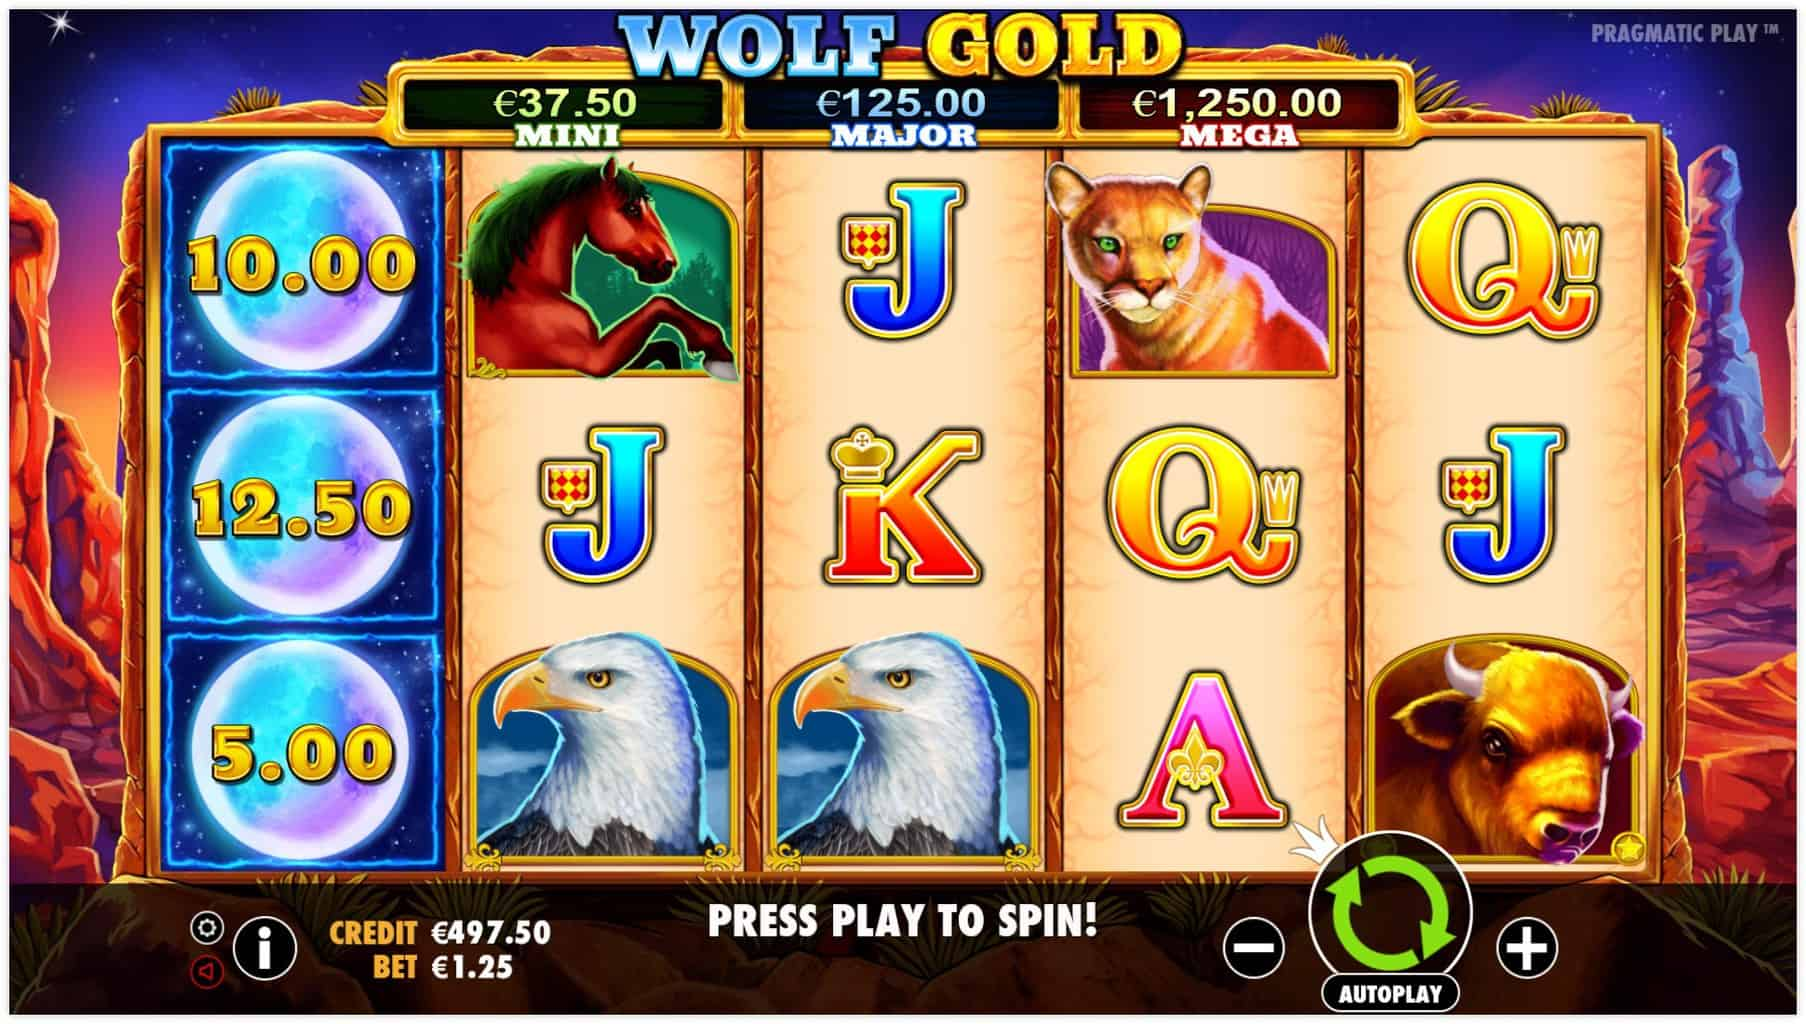 pragmatic play - wolf gold - Reels - casinogroundsdotcom